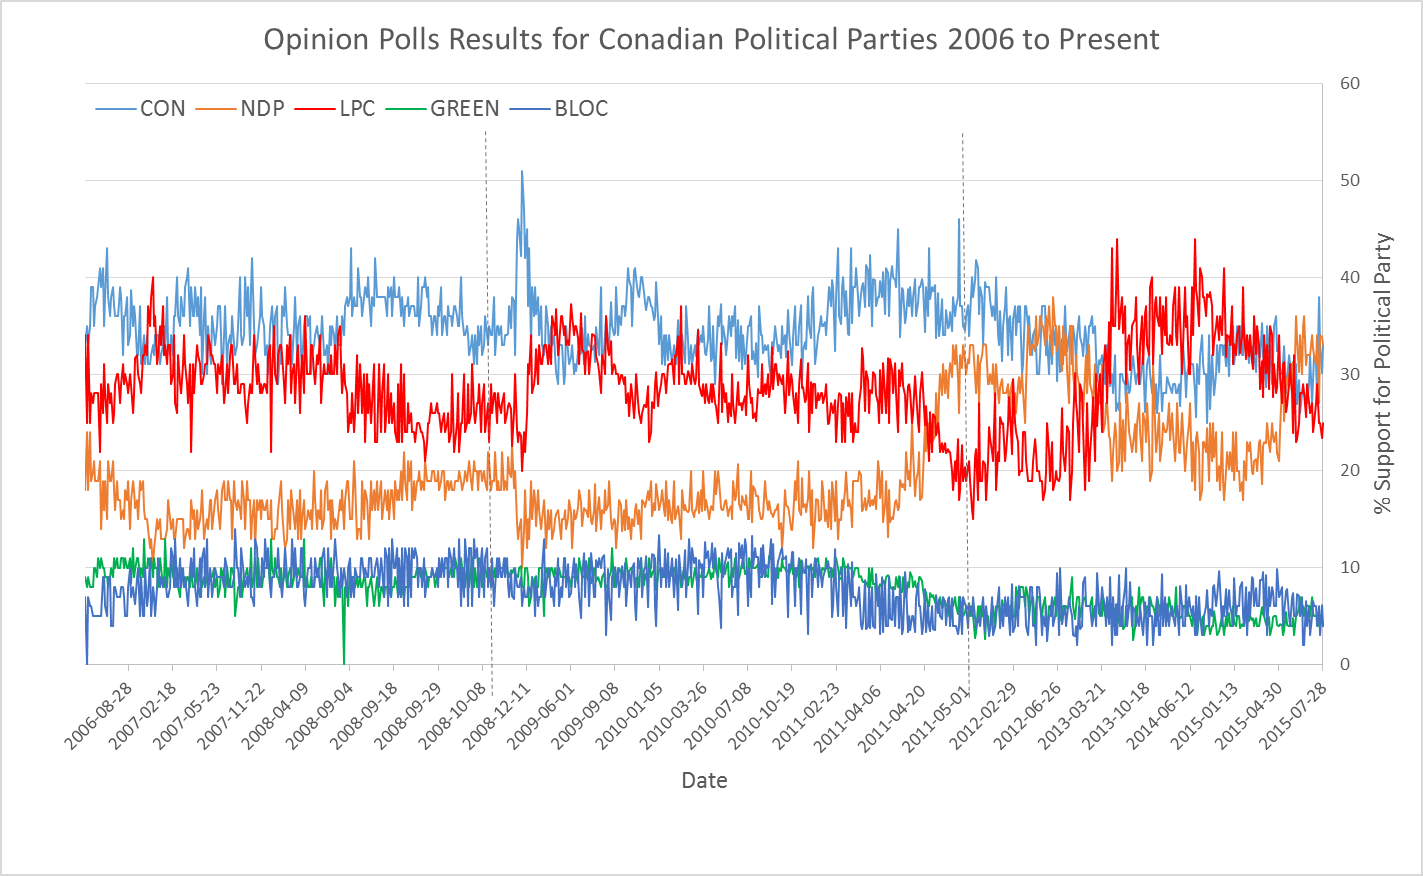 Patterns of Shifting Voter Support for Canadian Political Parties